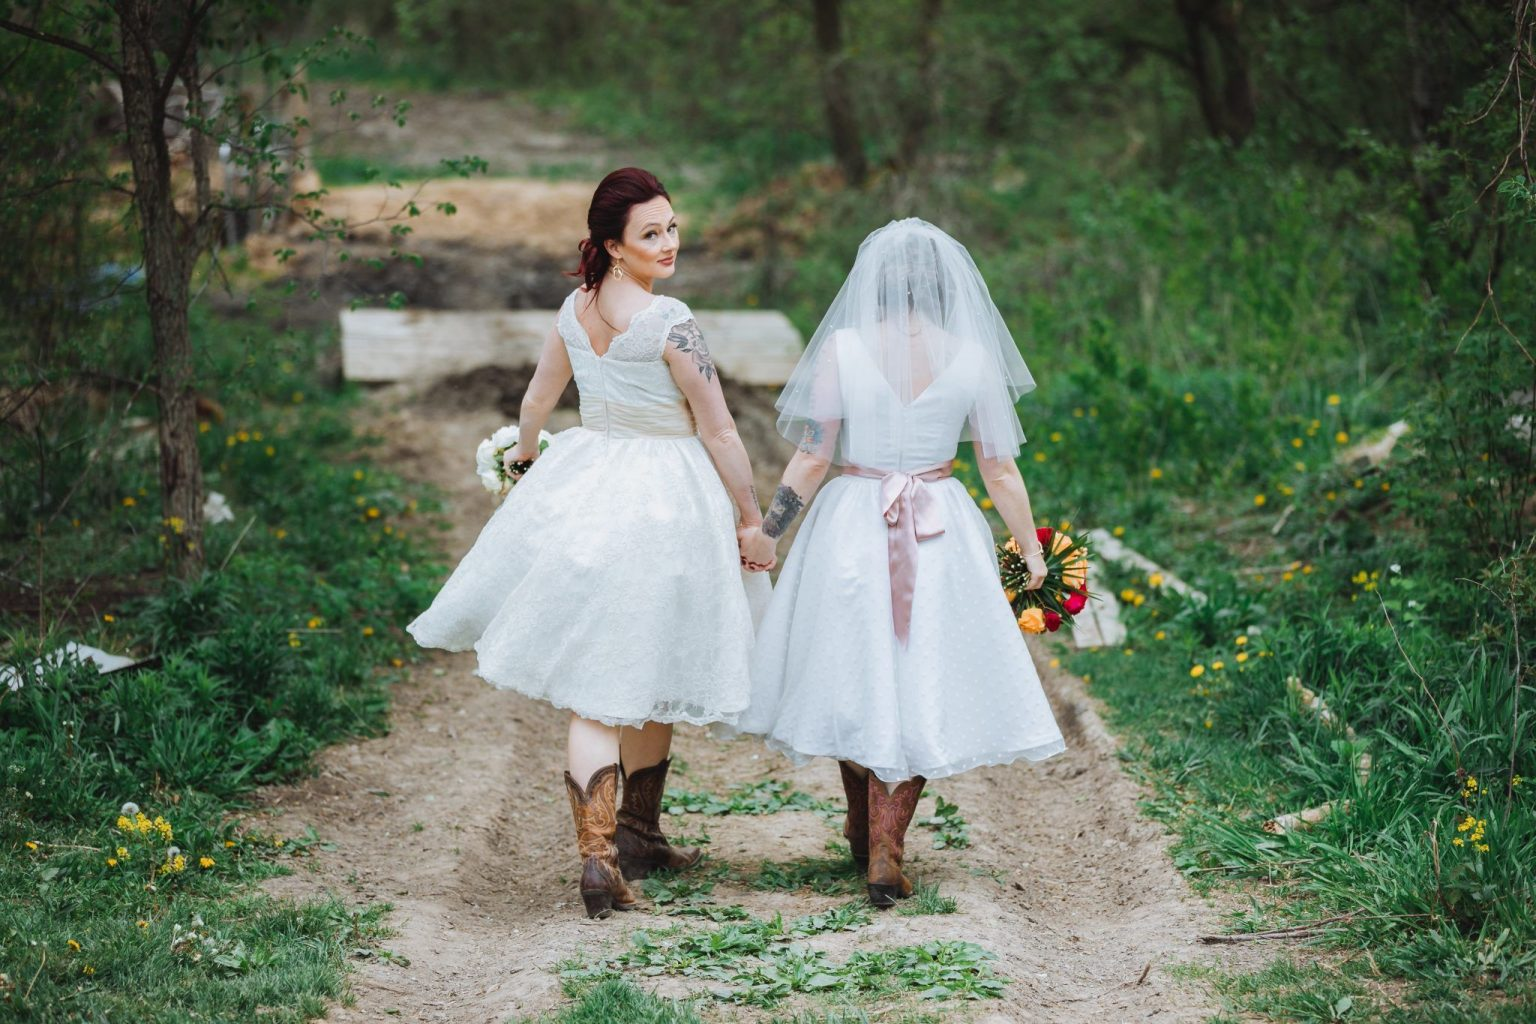 LGBTQ friendly wedding photographer delivering beautiful photos for all types of love.